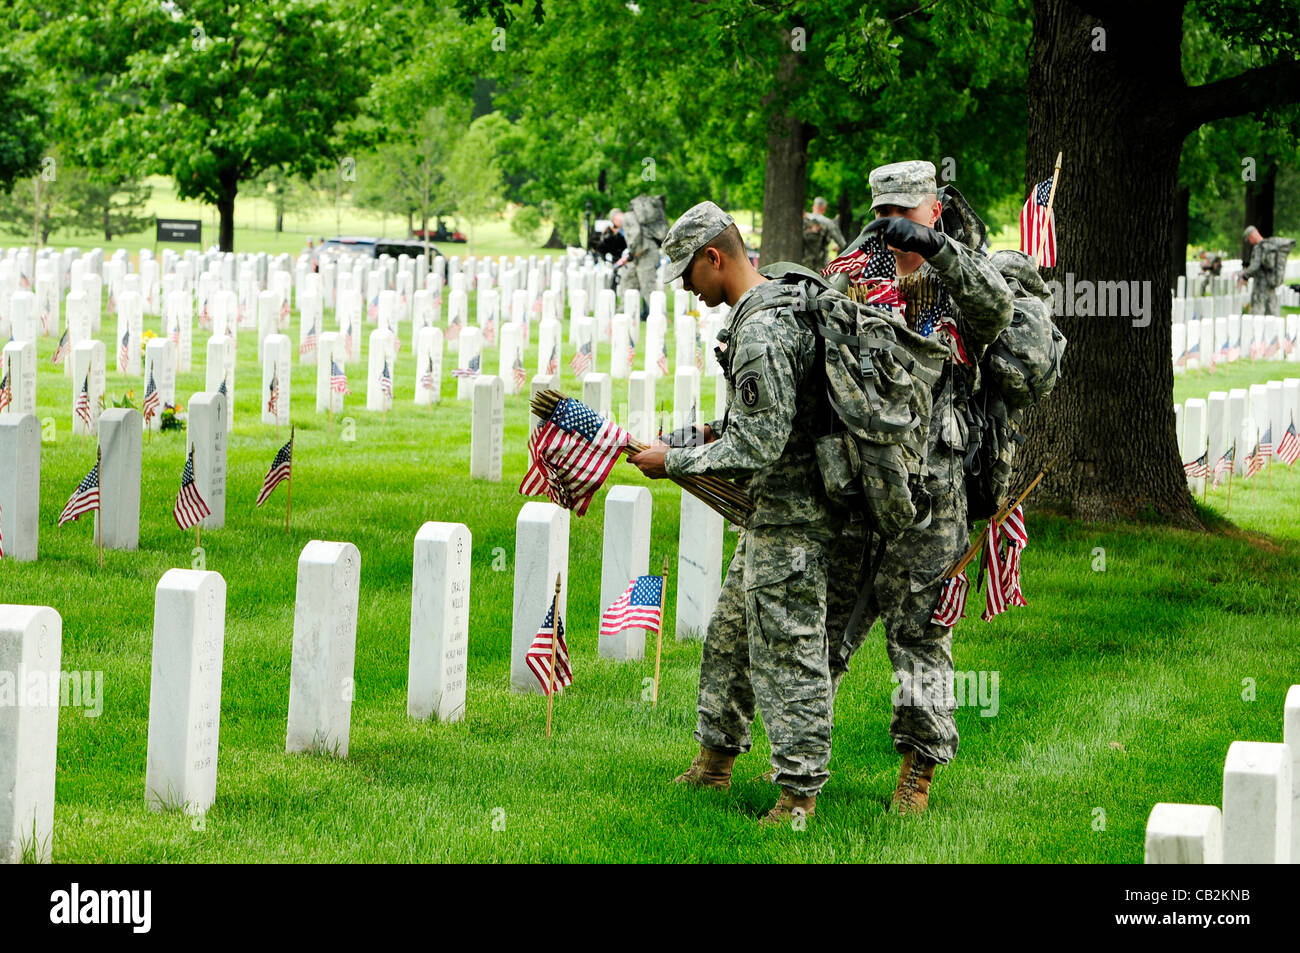 Members of the US 3rd Infantry known as The Old Guard place American flags on grave stones at Arlington National - Stock Image